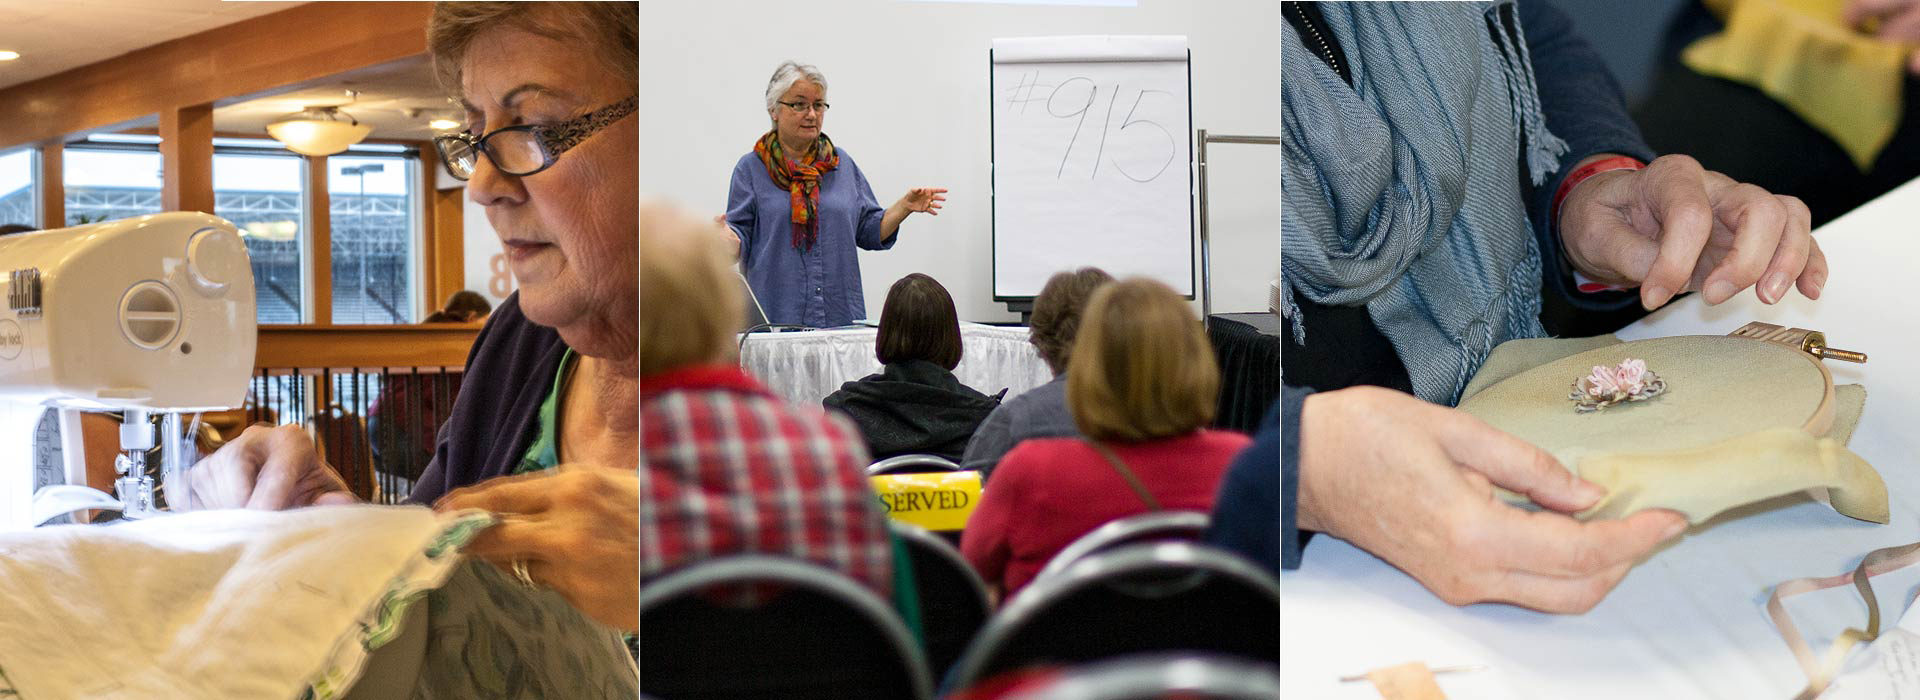 Three images of Sew Expo classes - woman at sewing machine, teacher in front of class, close up of hands embroidering